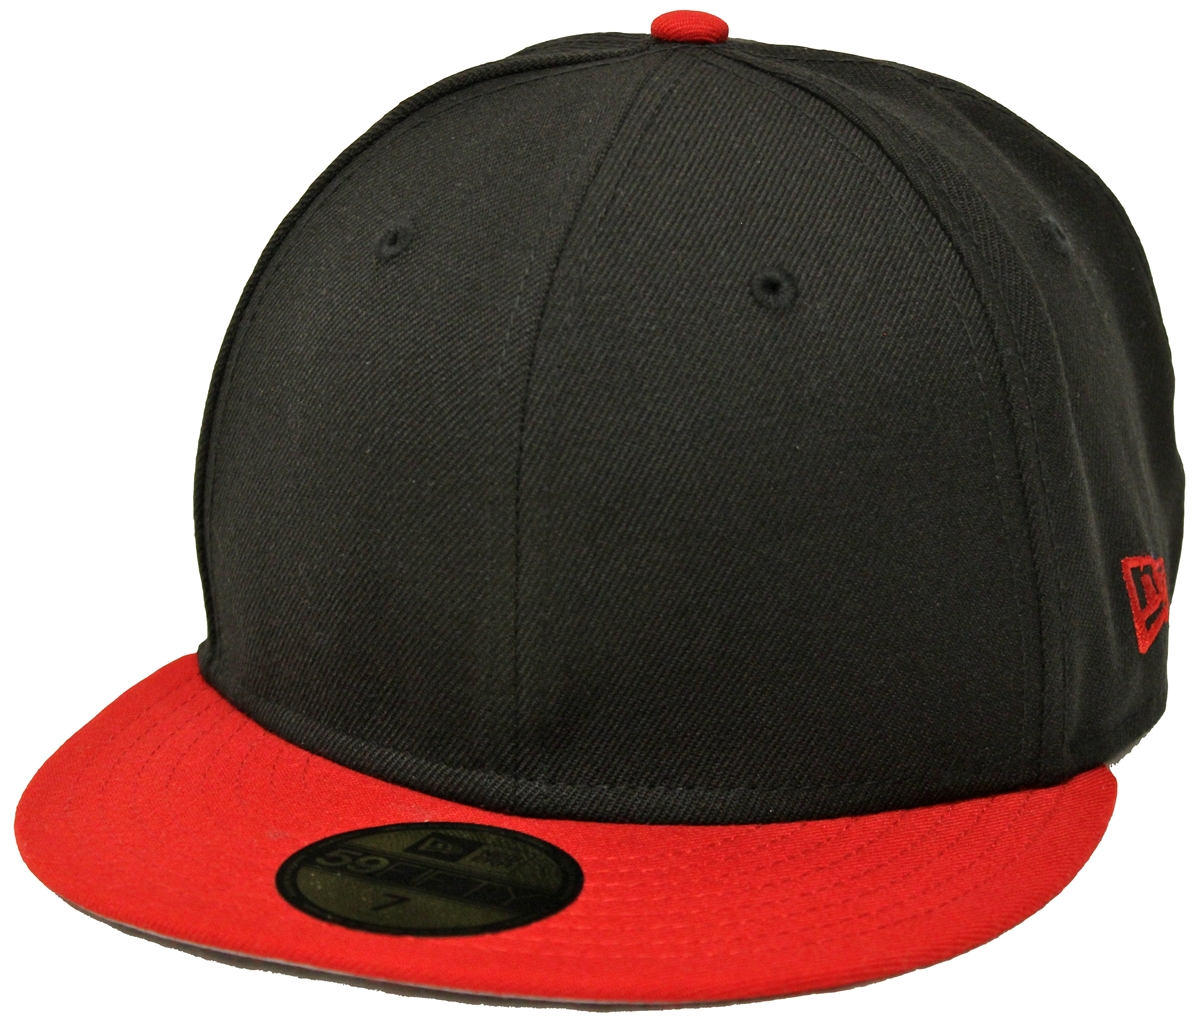 New Era 59Fifty Plain Black Red Fitted Cap Blank 2 Tone Gray ... b69cb5a70d3